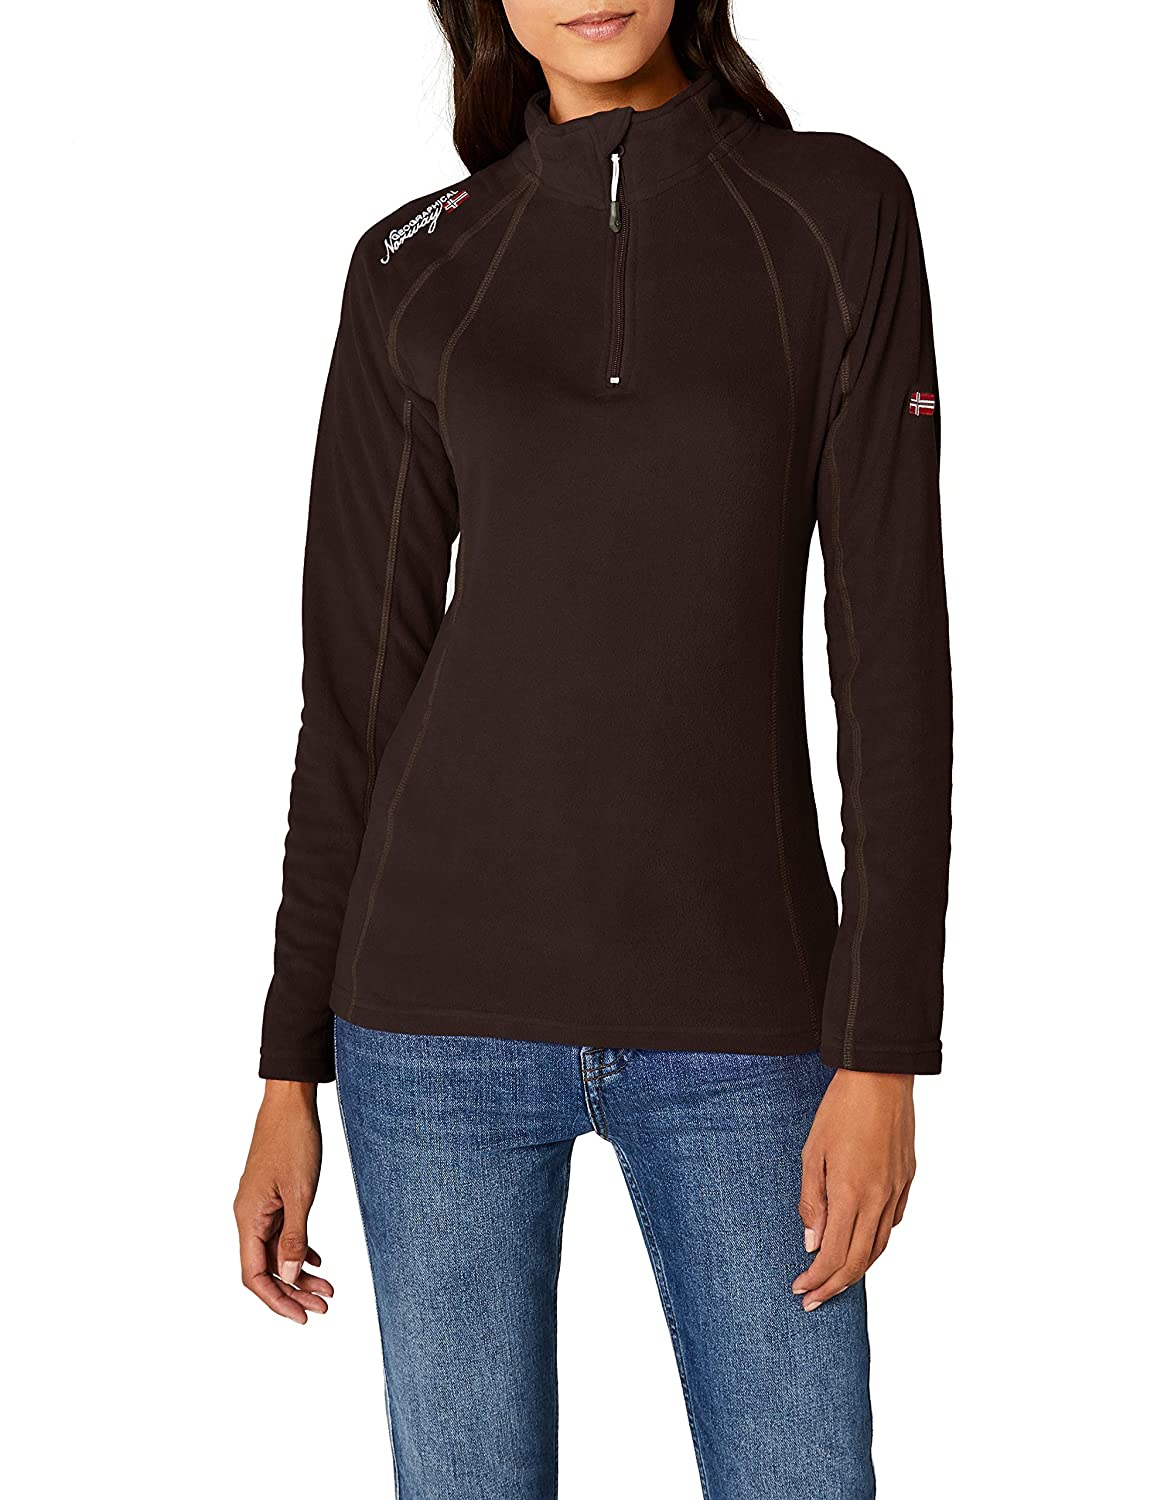 TALLA S. Geographical Norway Talmud Lady Half Zip Chaleco para Mujer